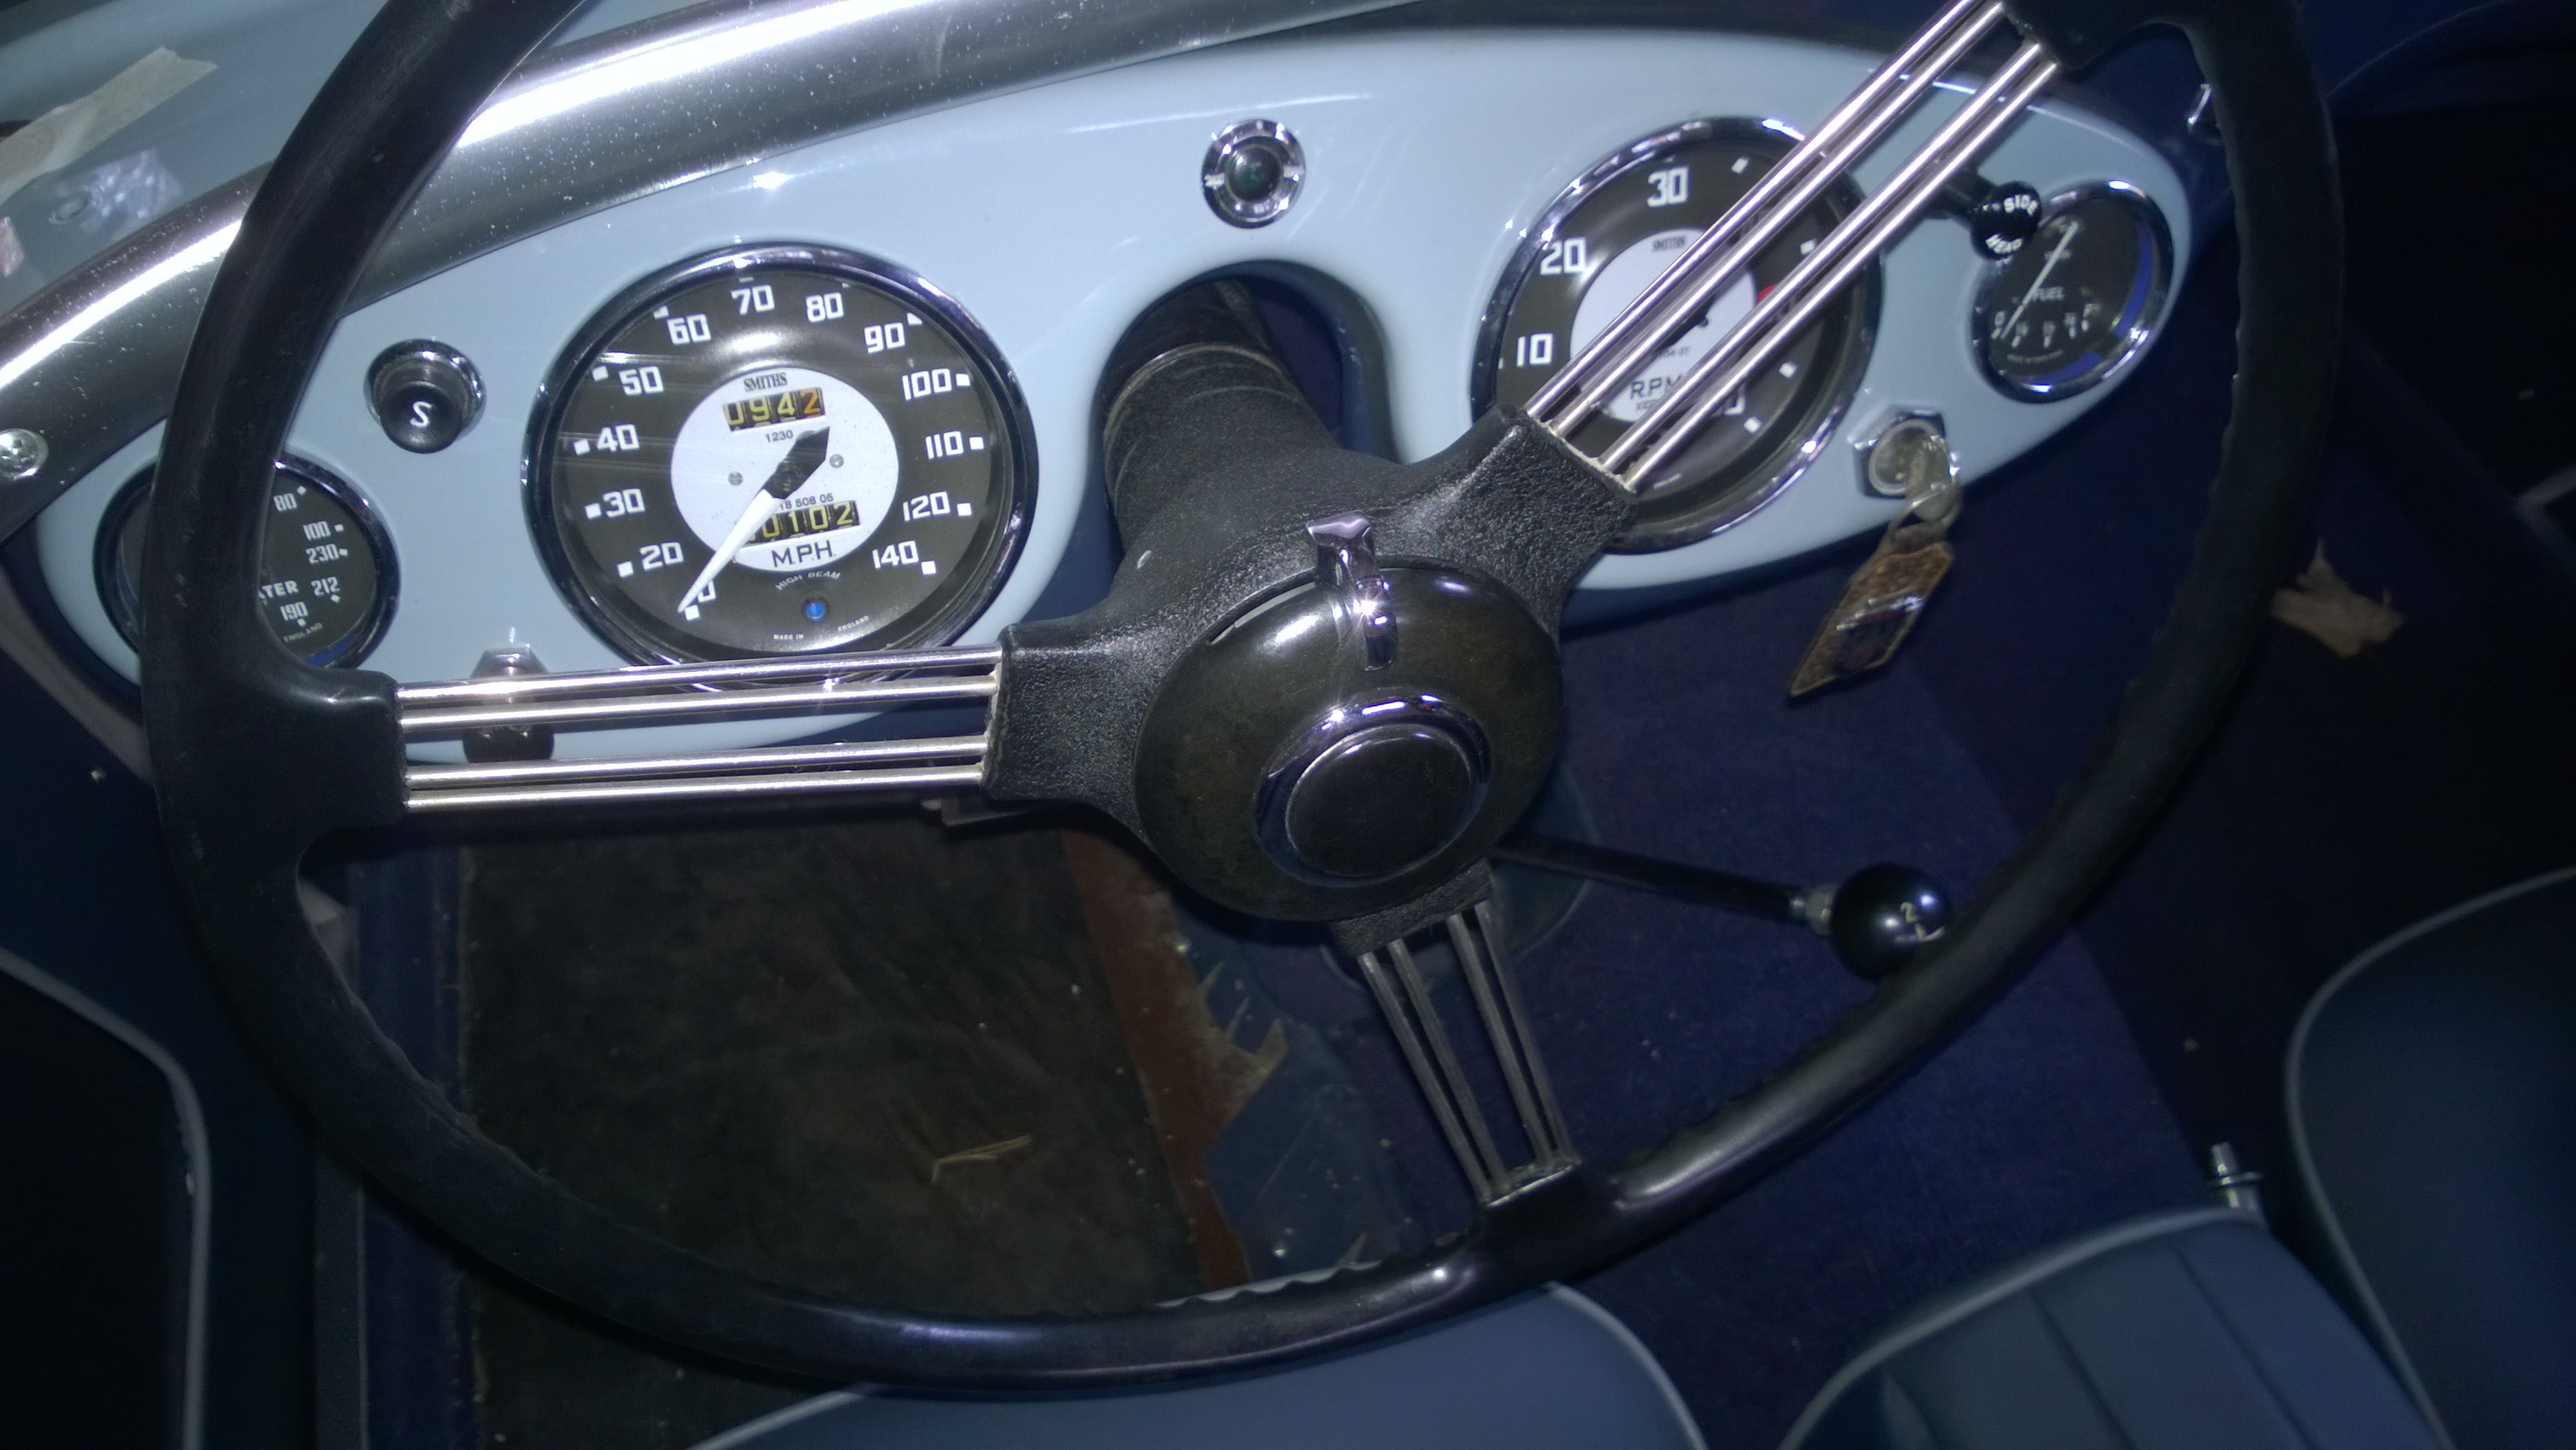 The Refinished Wrinkle Black Steering Wheel Hub on #174